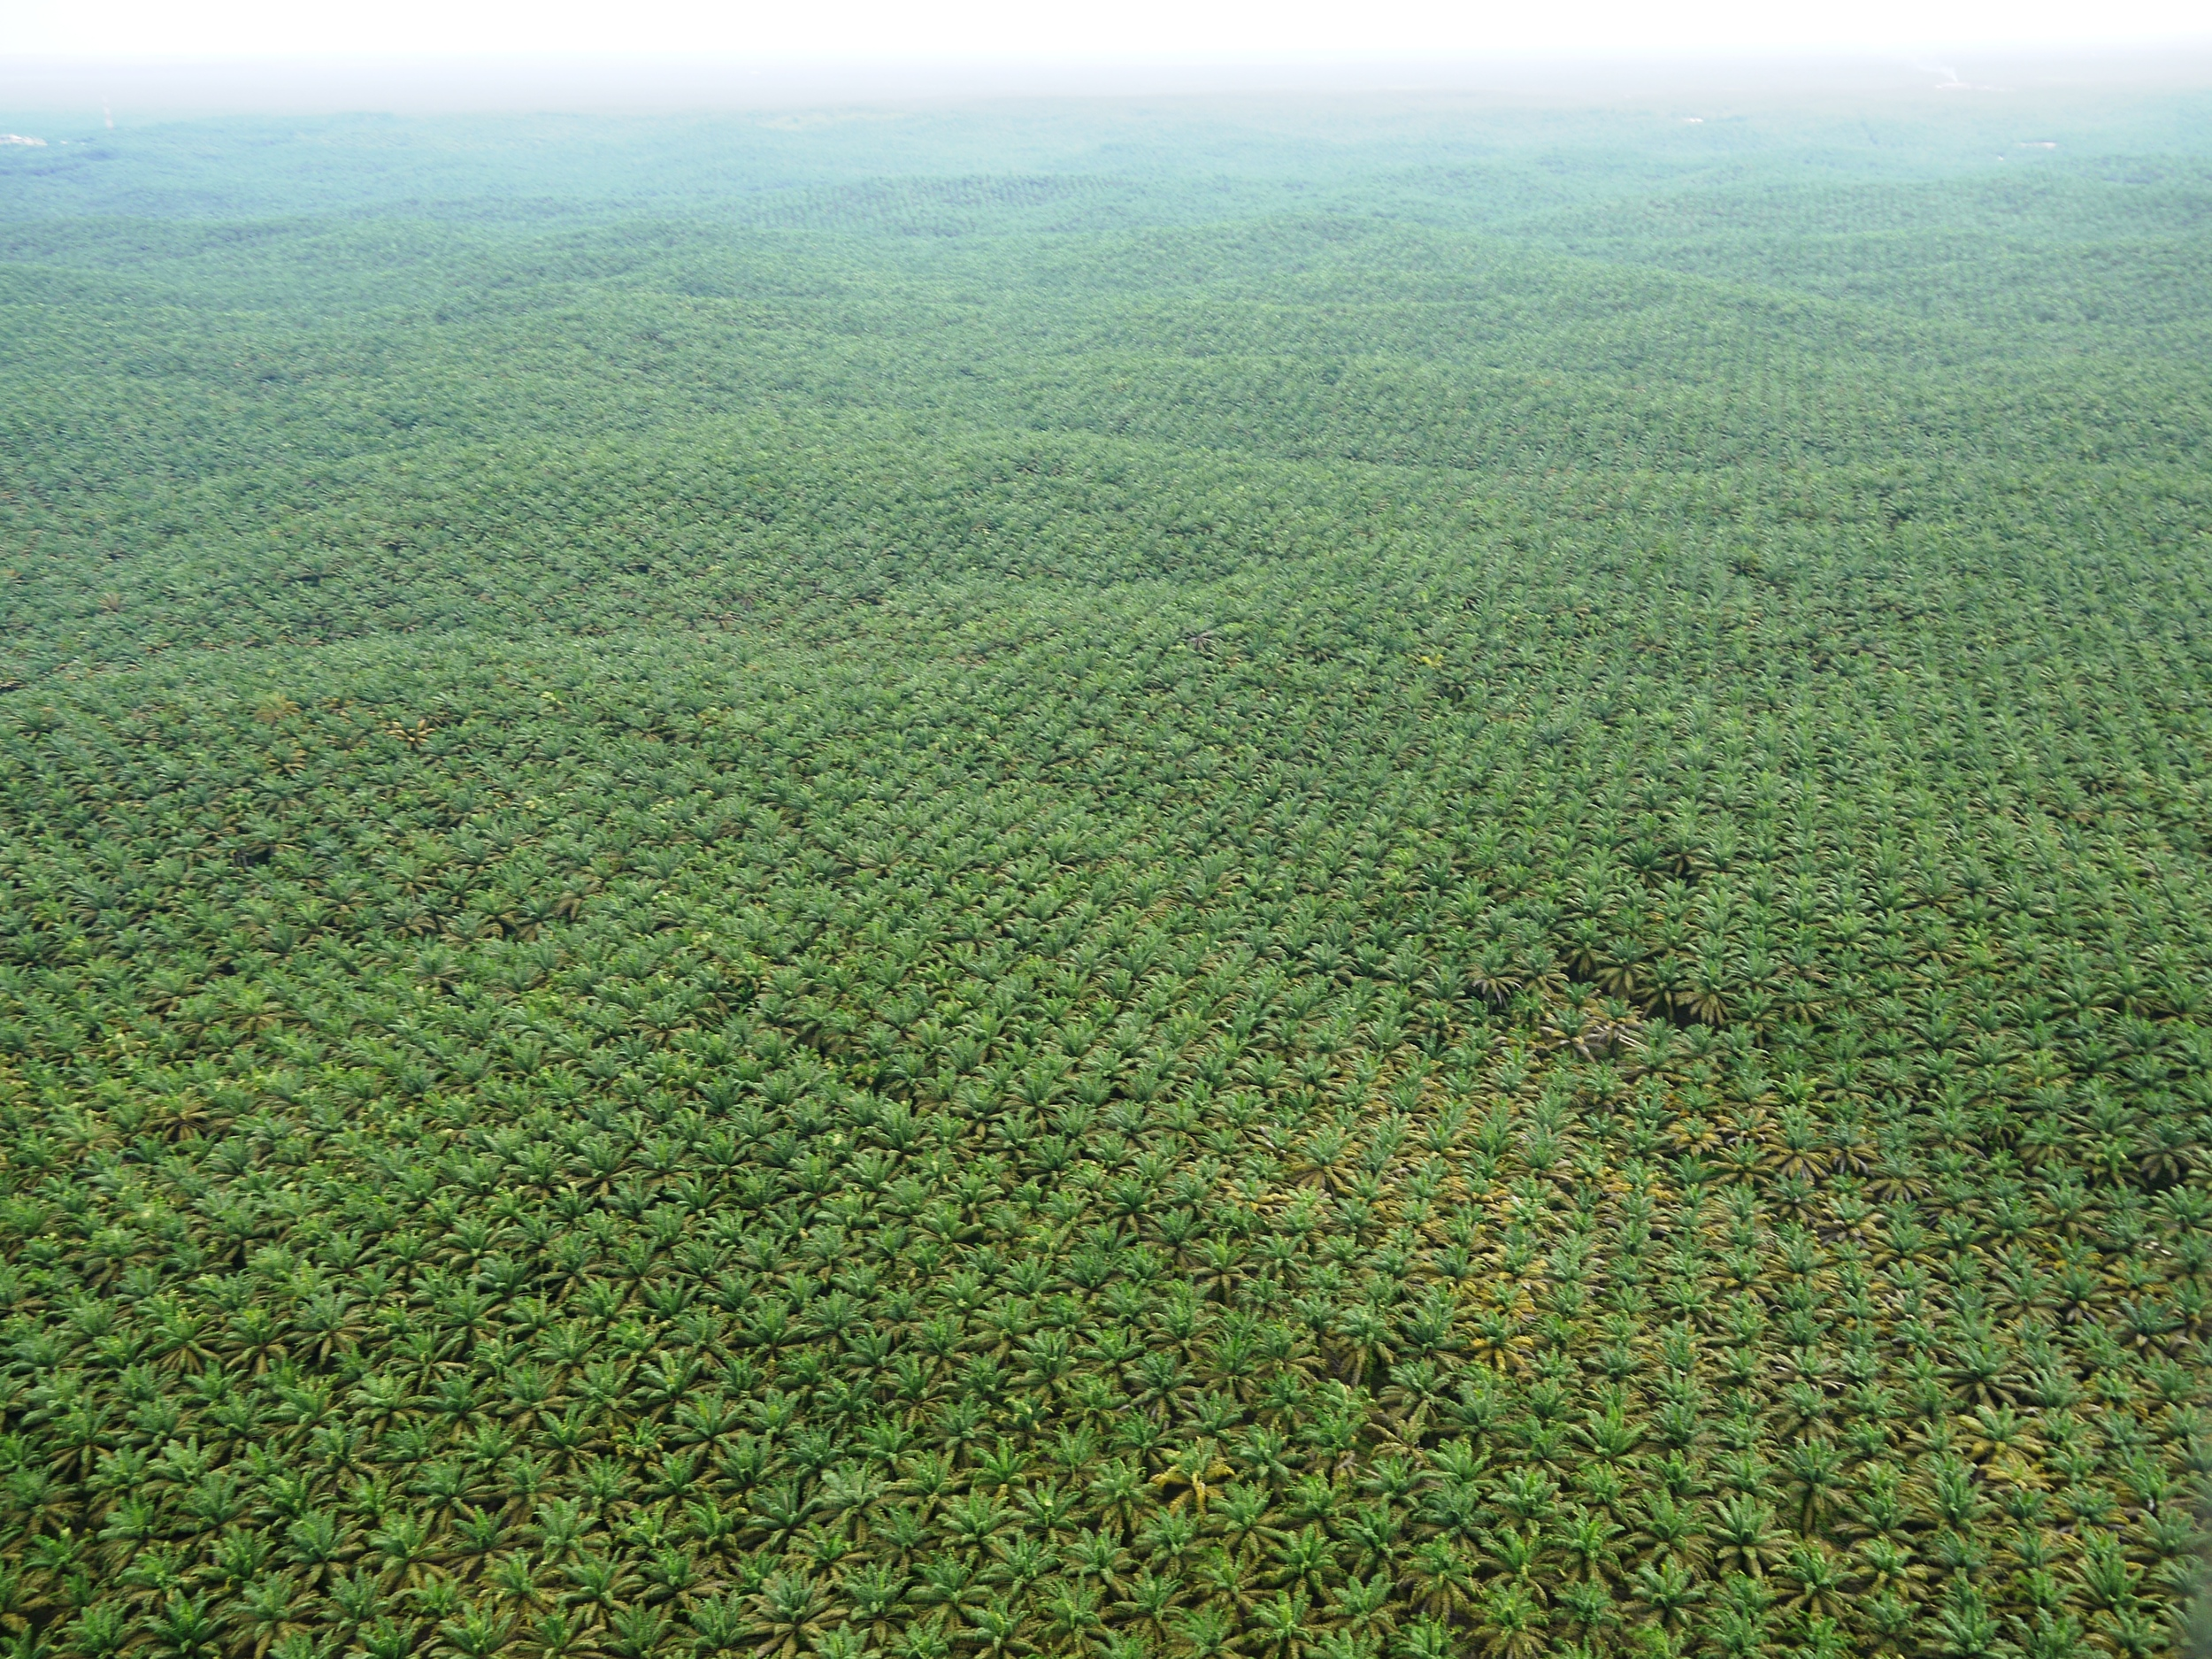 A tsunami of oil palm  (photo by William Laurance)